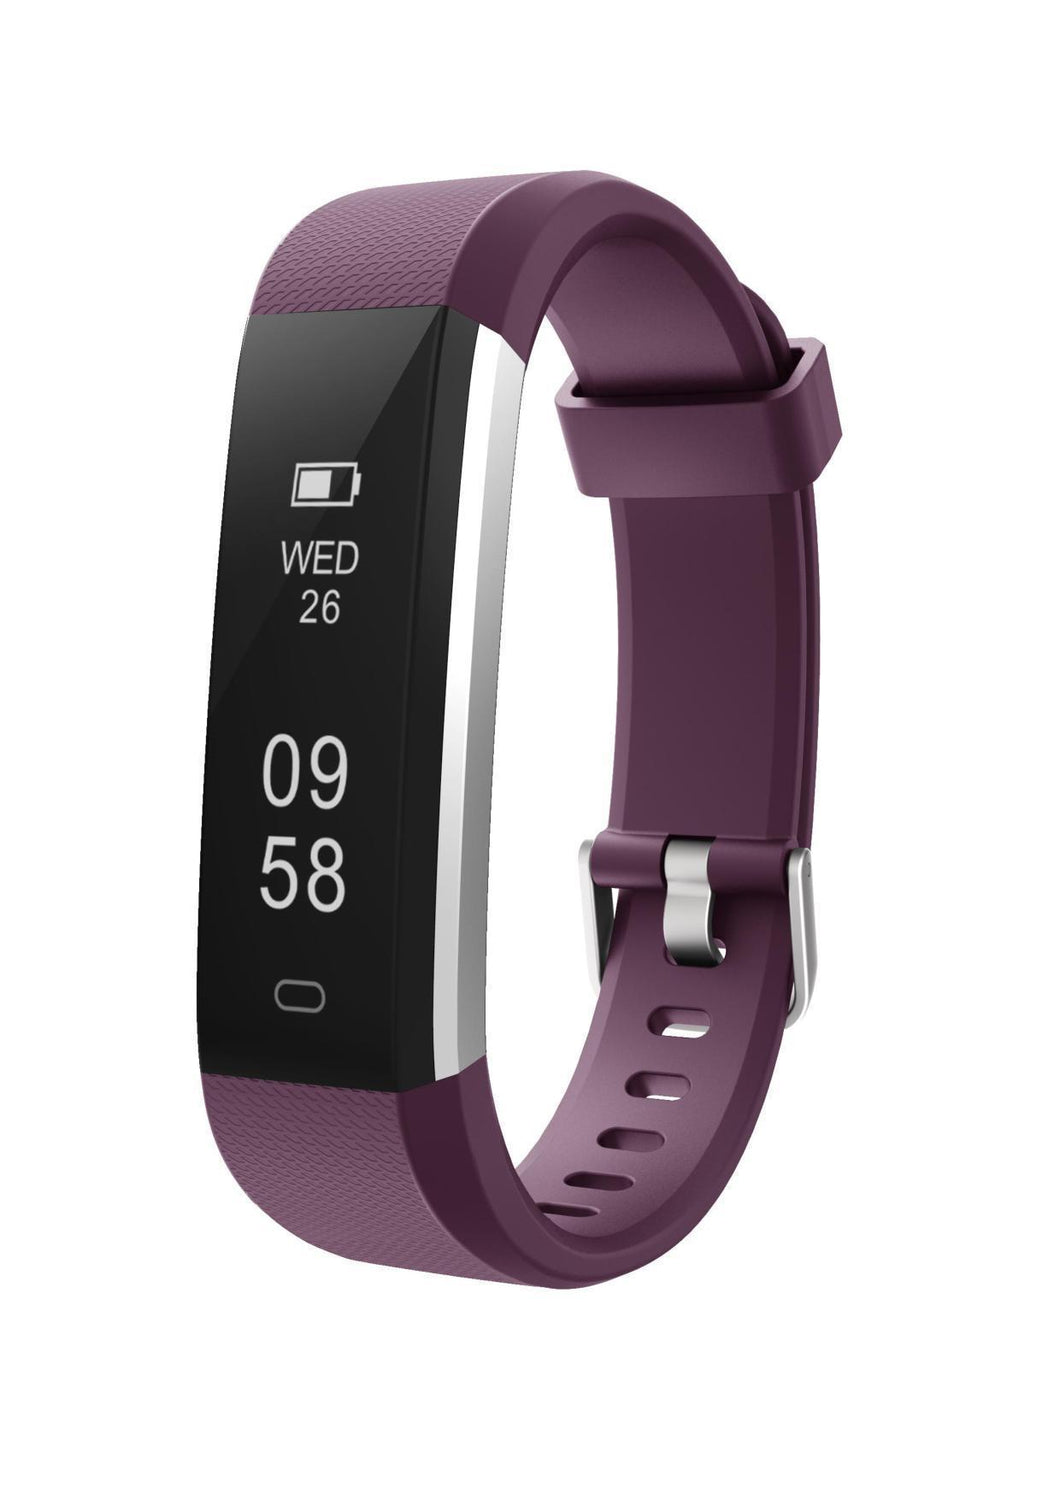 Smart Watch - Tracker Plus - Smart Watch For Kids - Purple